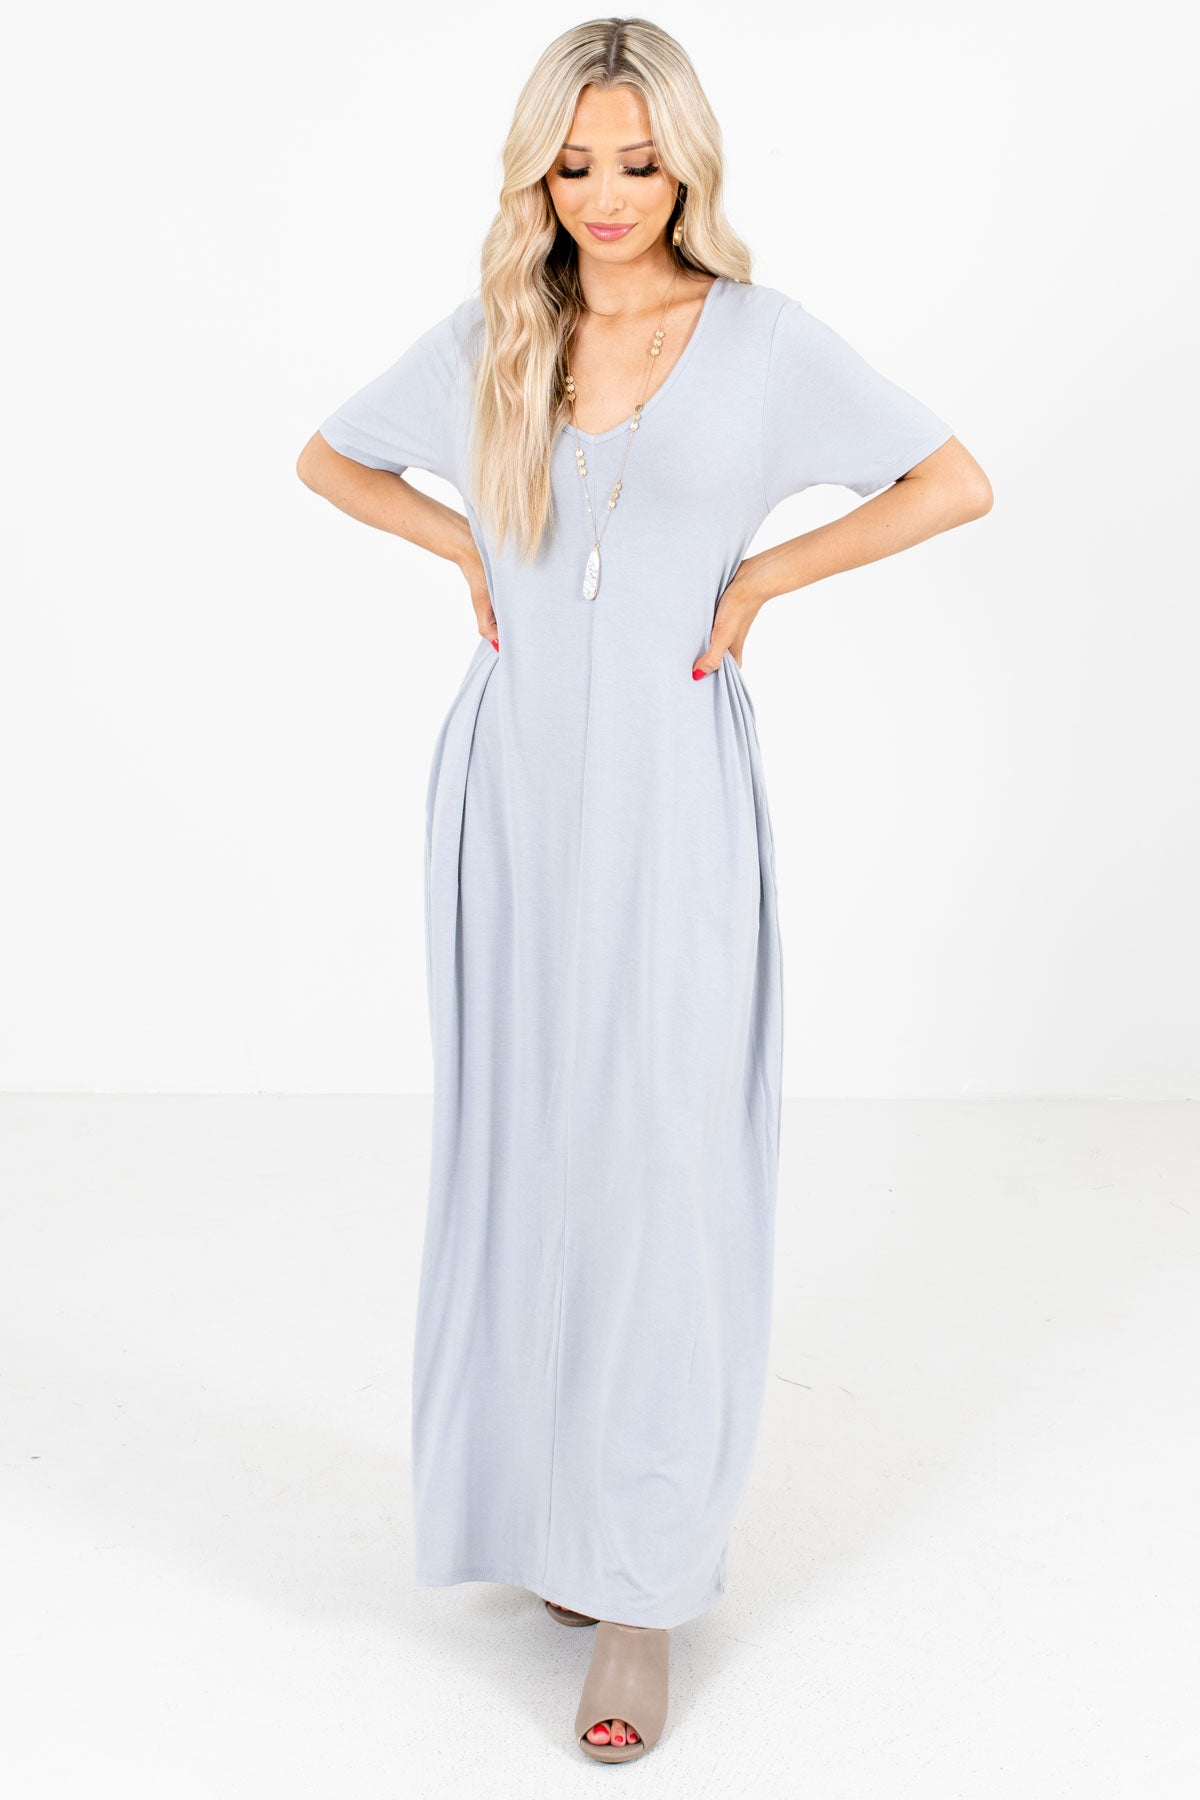 Gray V-Neckline Boutique Maxi Dresses for Women